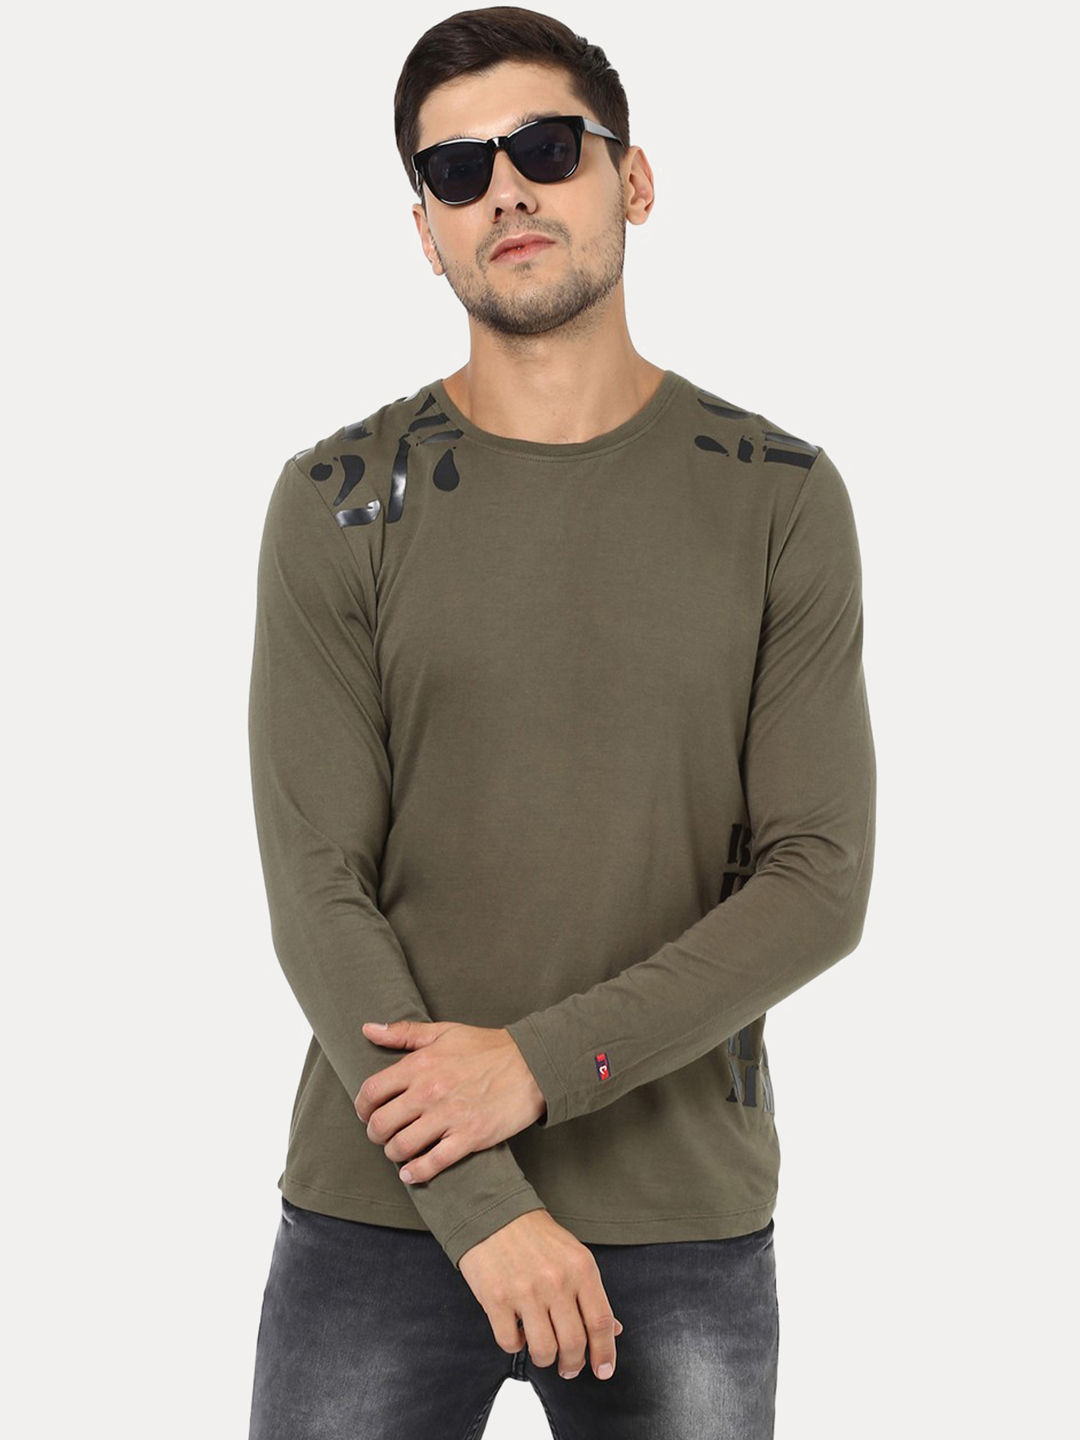 24902a83c155 ARMY GREEN SOLID T-SHIRT